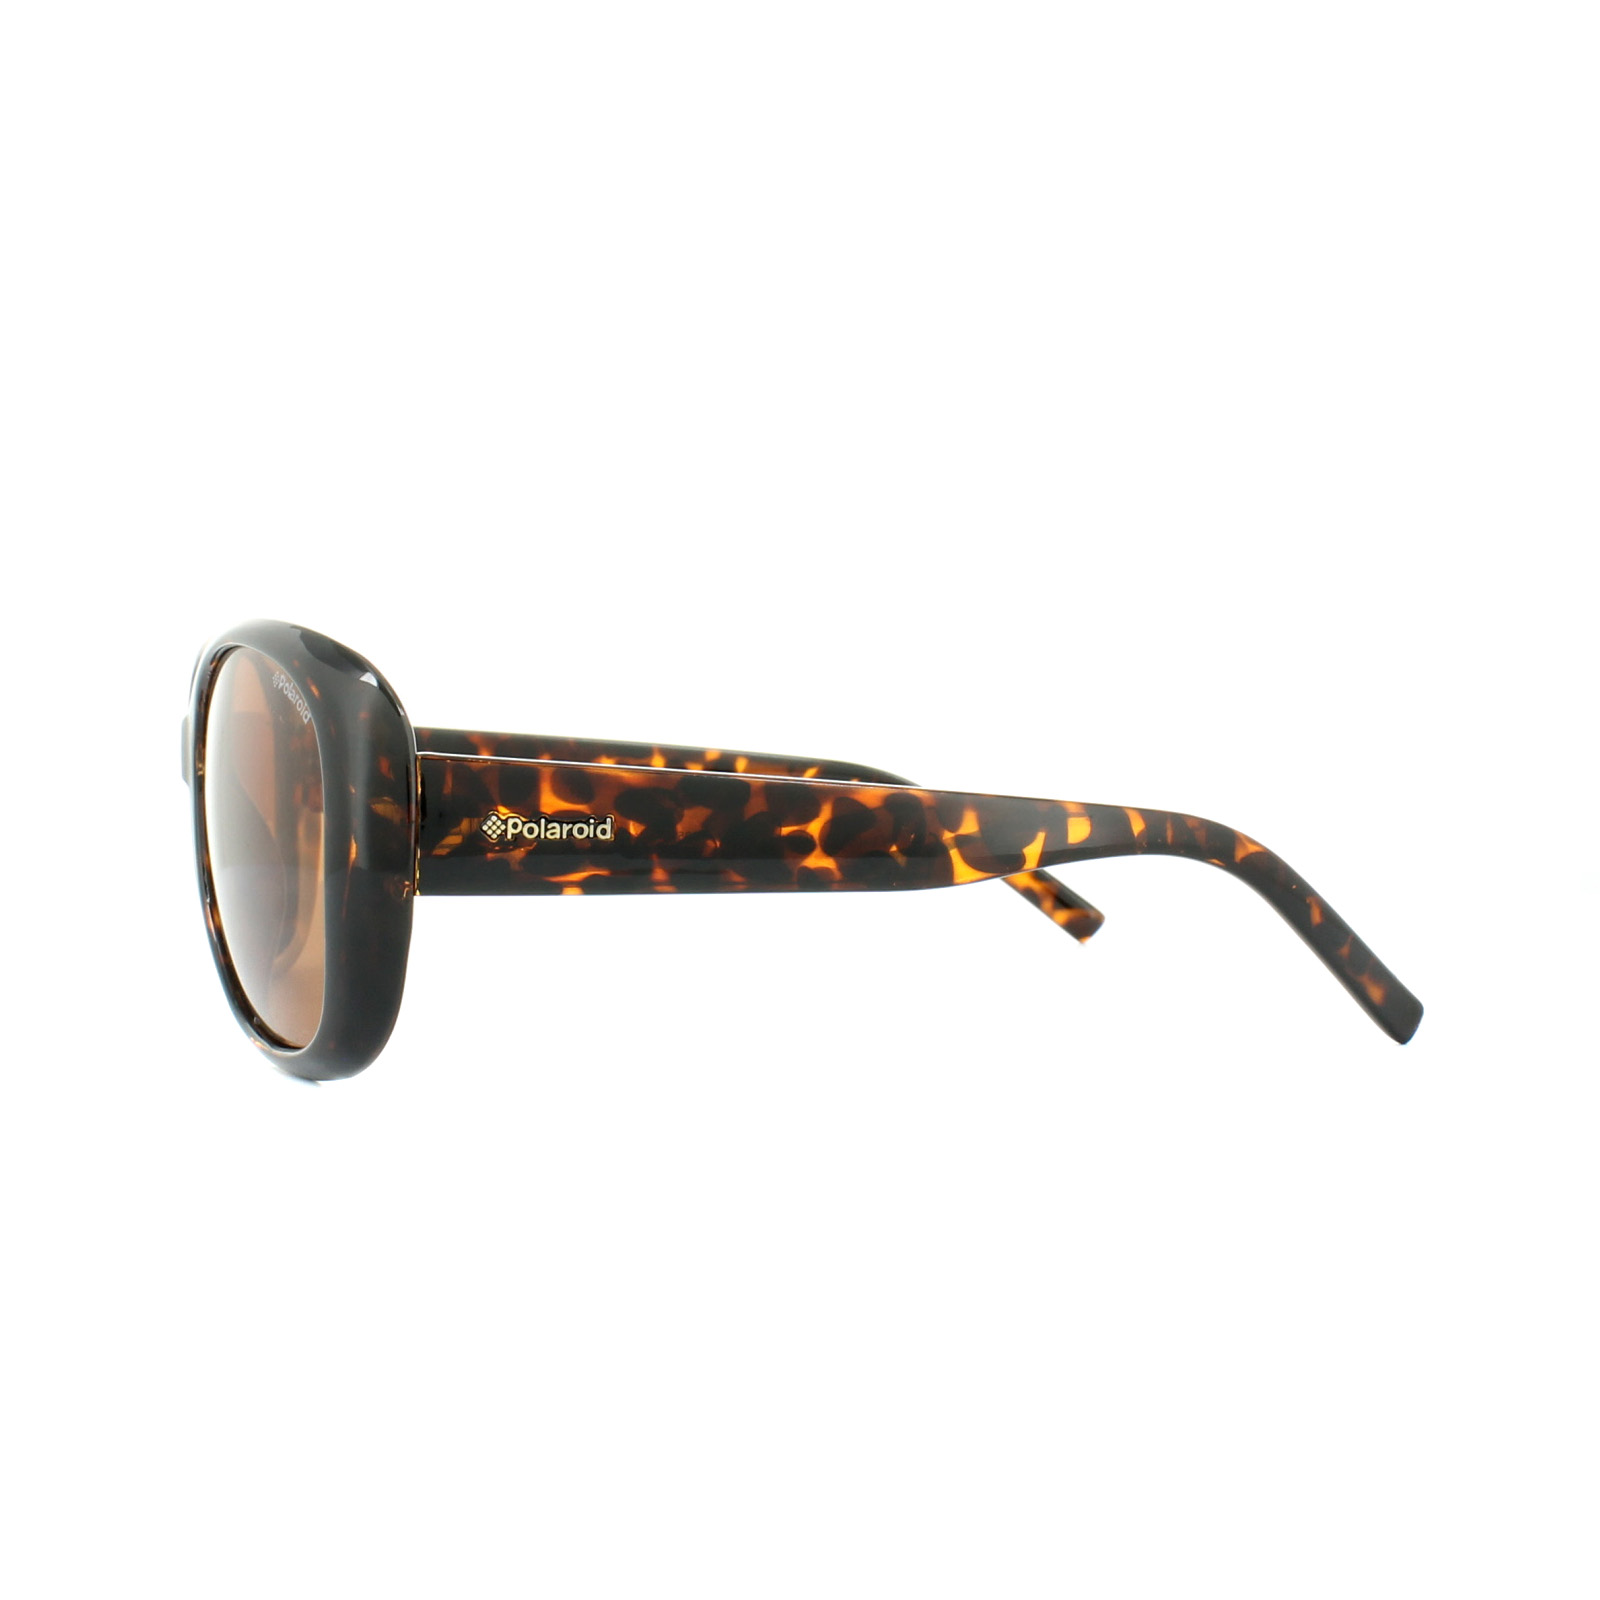 07b15e78e5a Sentinel Polaroid Sunglasses PLD 4014 S V08 HE Havana Brown Polarized